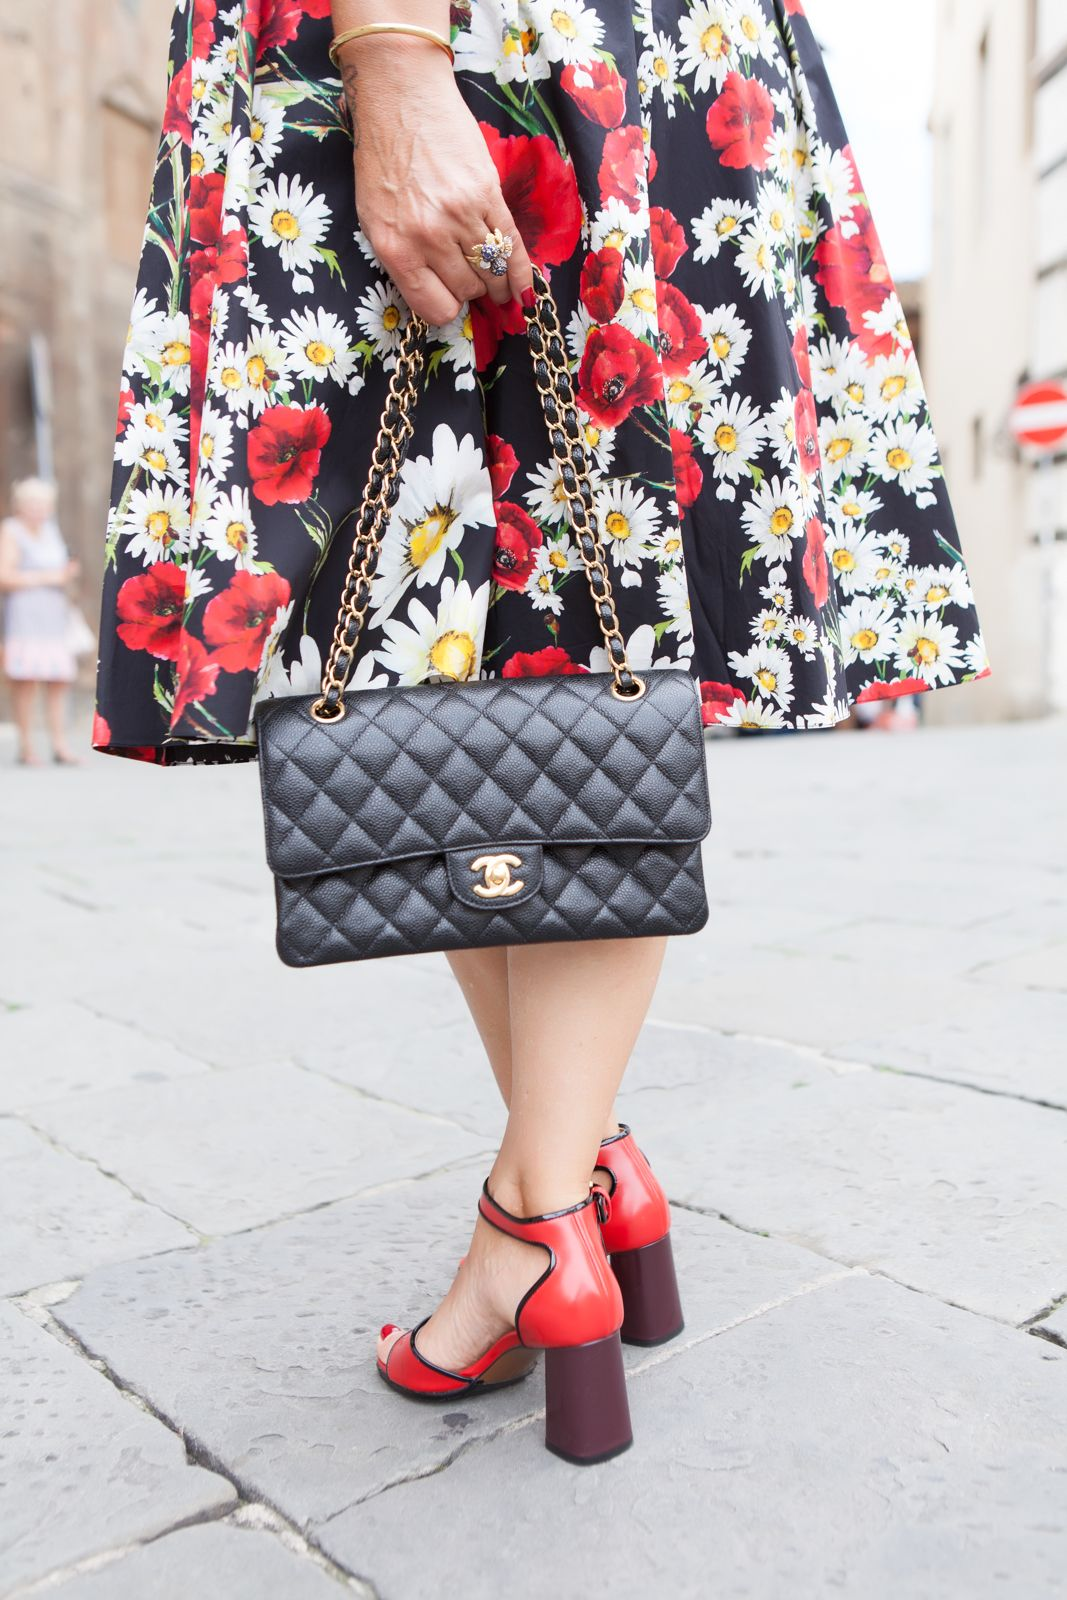 marni sandals, dolce gabbana flower, chanel bag. dress - photo shooting in Siena - Not Only Twenty Fashion blog